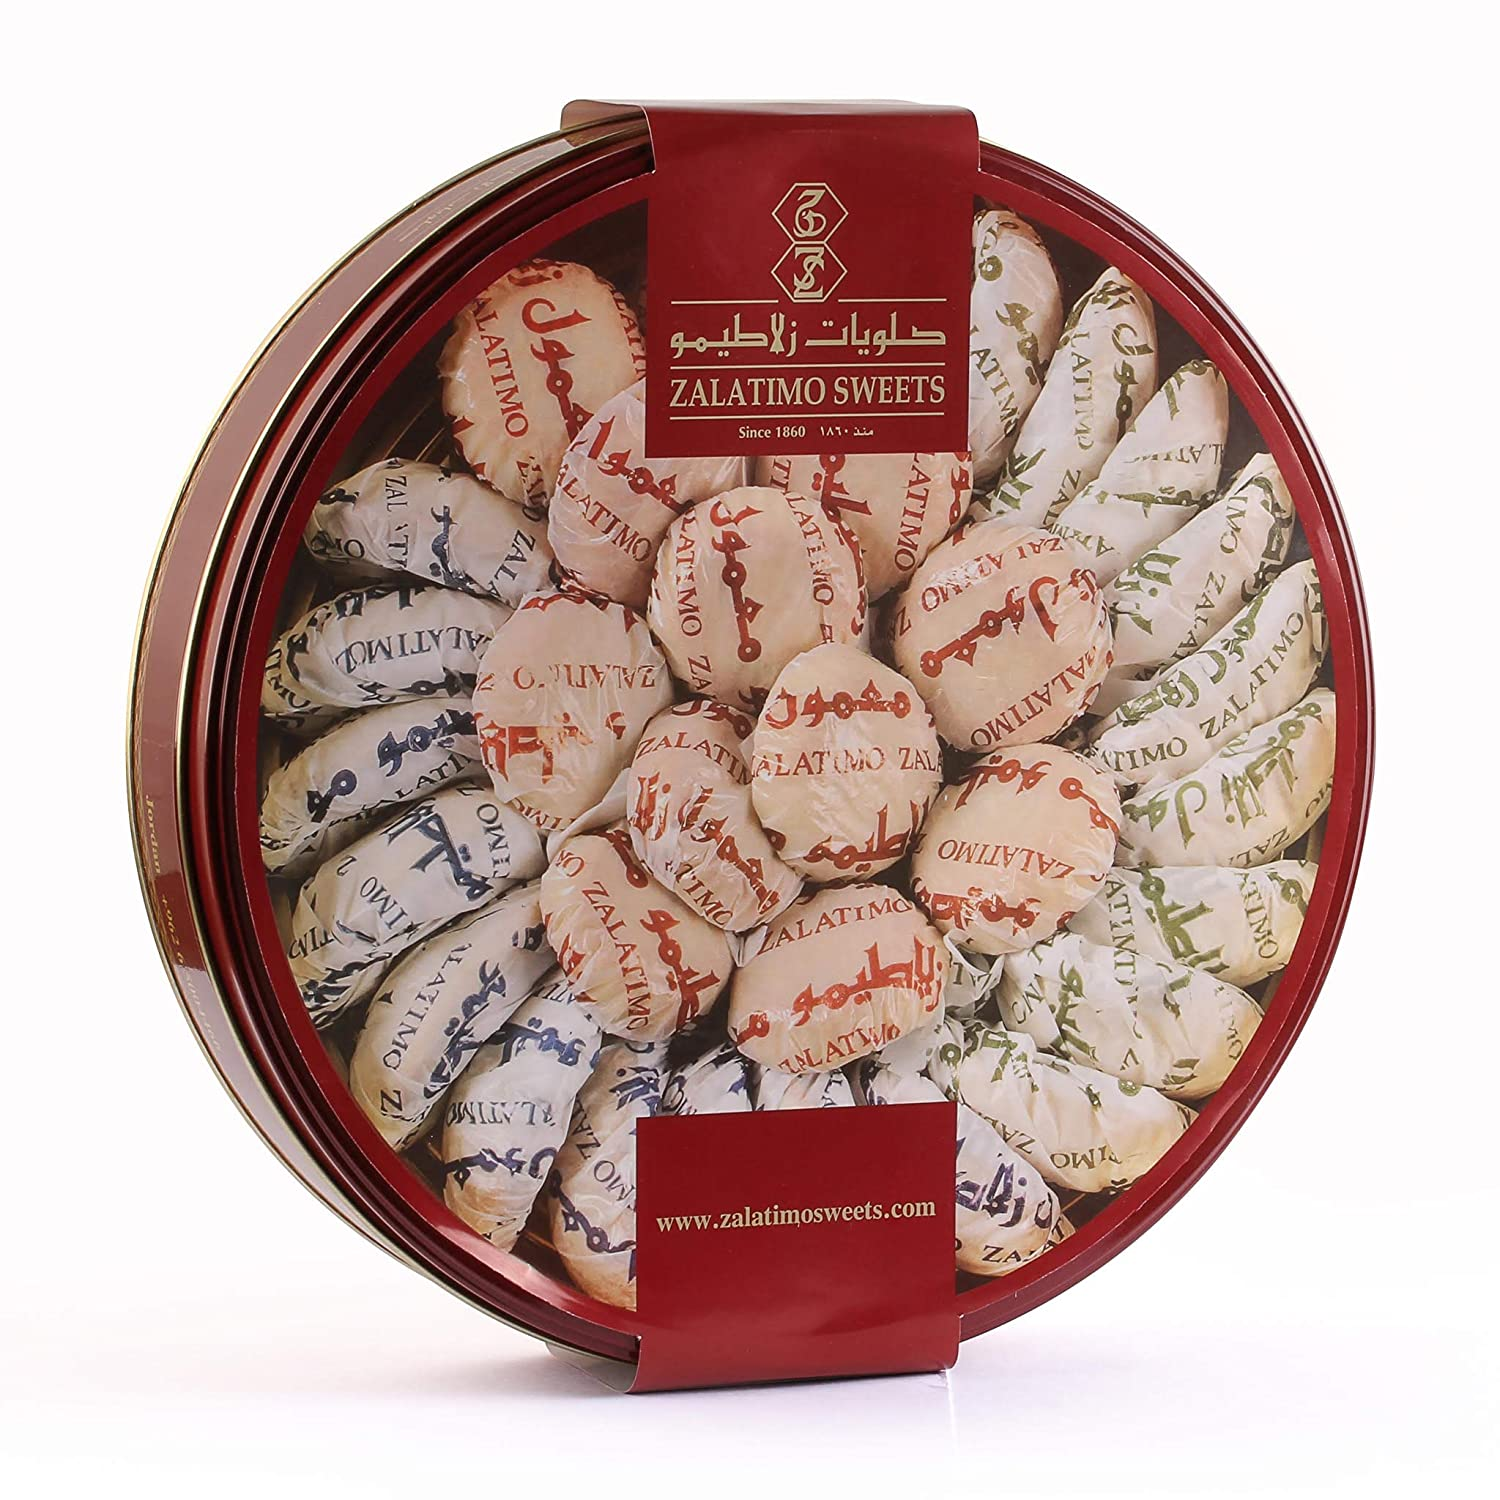 Zalatimo Sweets Since 1860, 100% All-Natural Assorted Mamoul Round Gift Tin Shortbread Biscuits, Slightly Sweet, Pistachio, Walnuts, Dates, No Preservatives, No Corn Starch, No Syrups! 2.2 LB